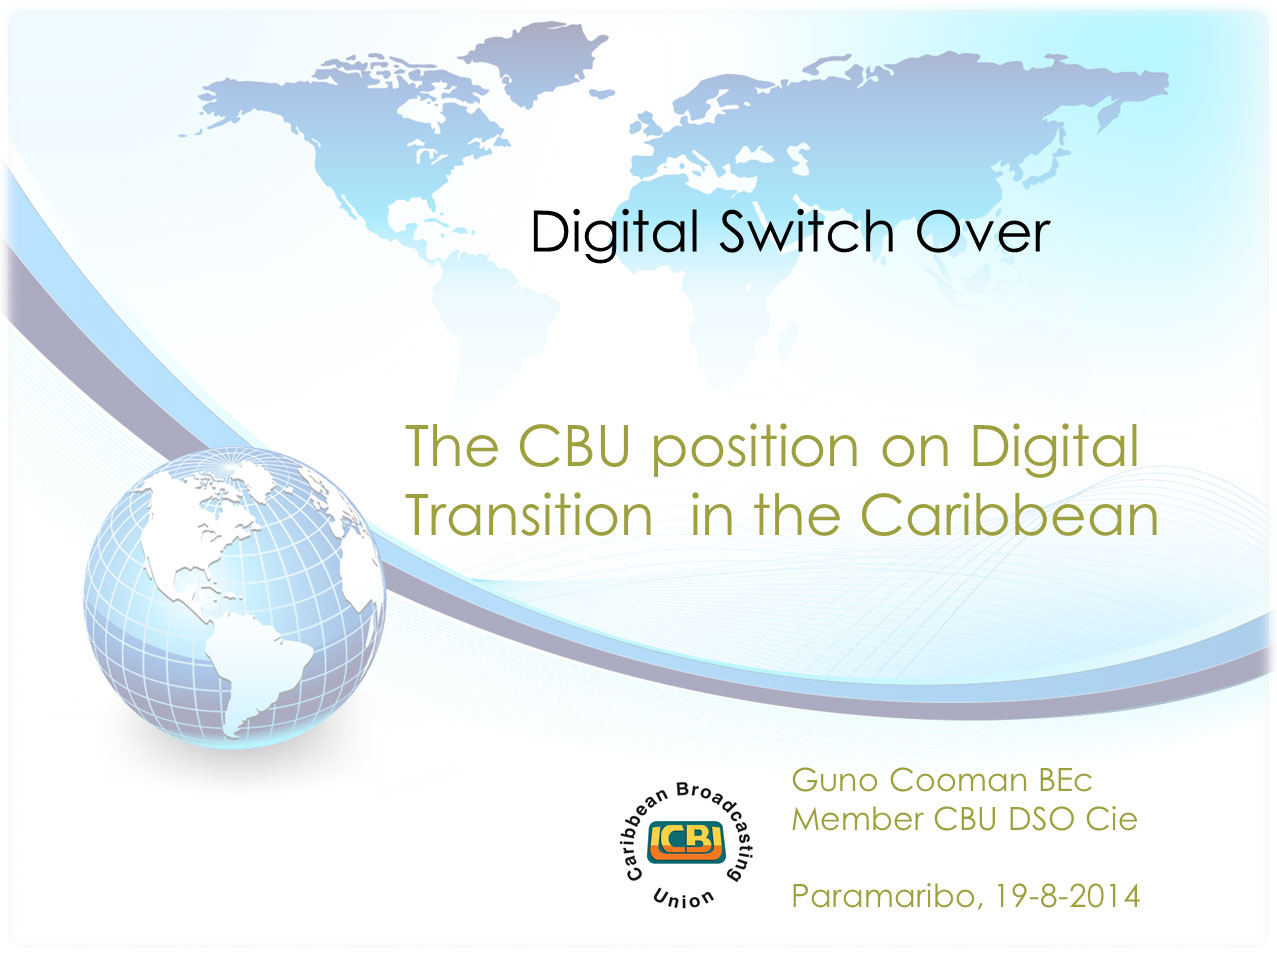 Digital Switch Over – The CBU position on Digital Transition  in the Caribbean by Guno Cooman